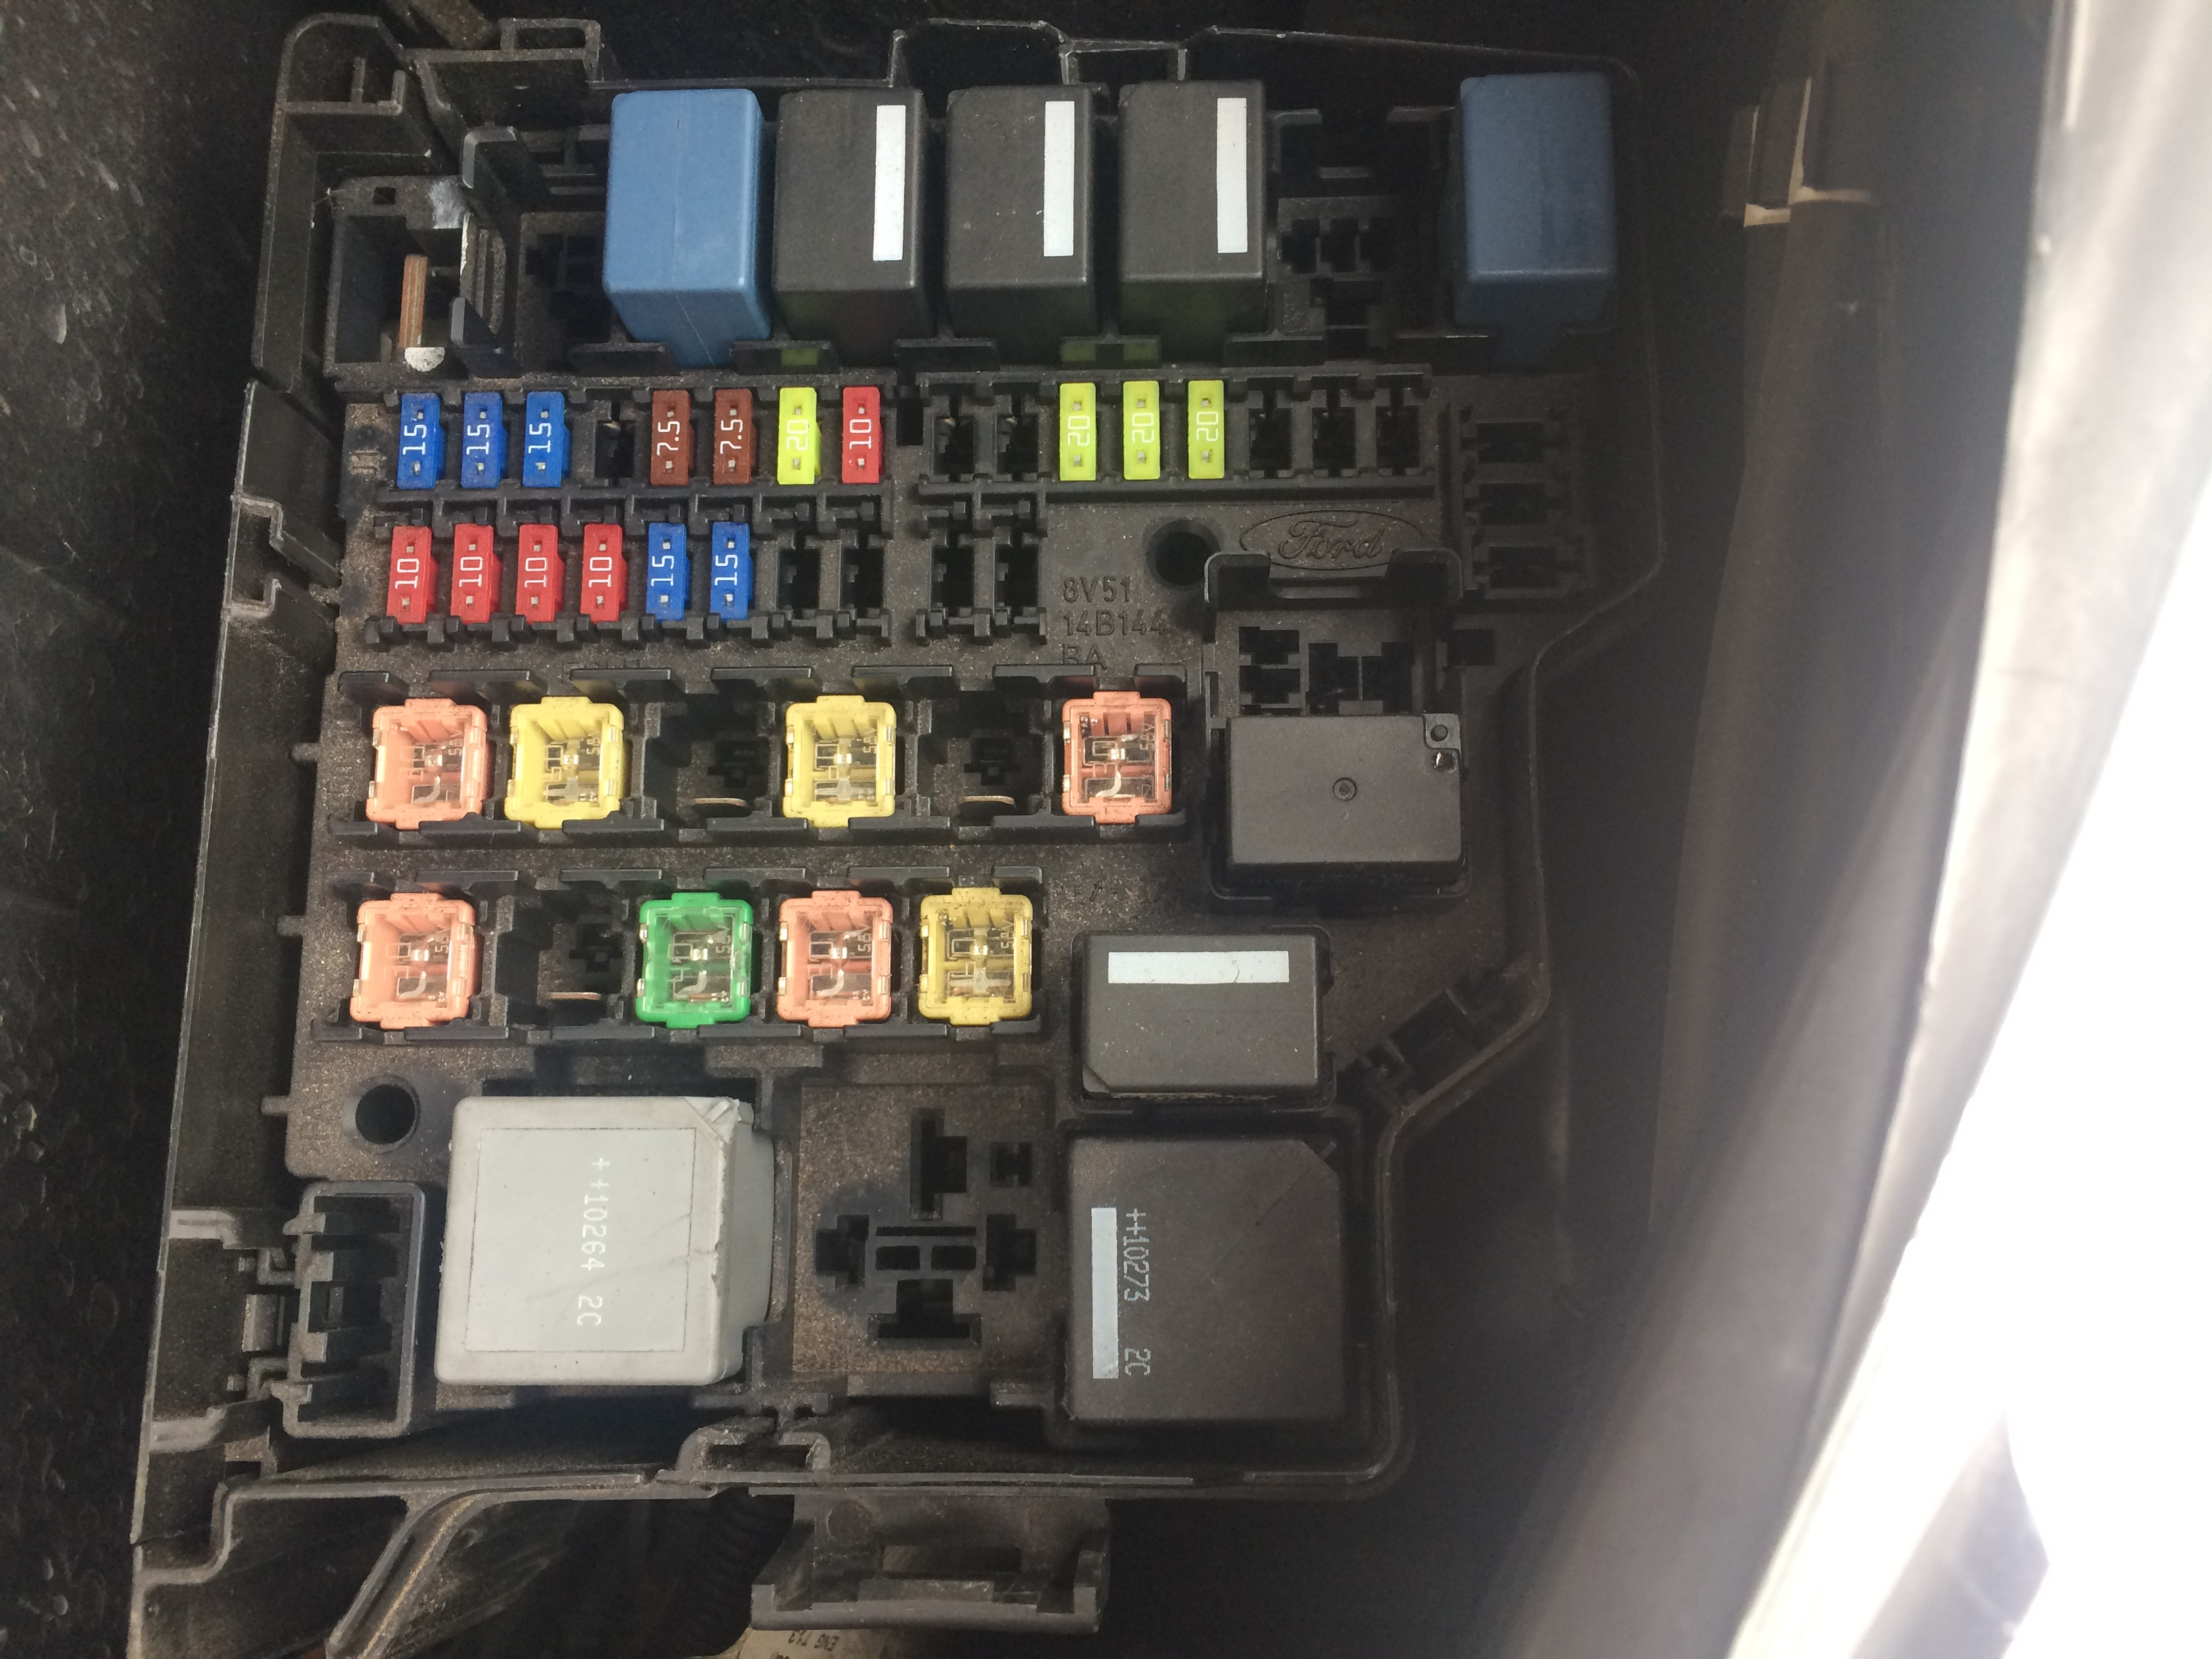 Ford Fiesta 1 25 Zetec Fuse Box Forum : Air con problem or not ford fiesta club owners